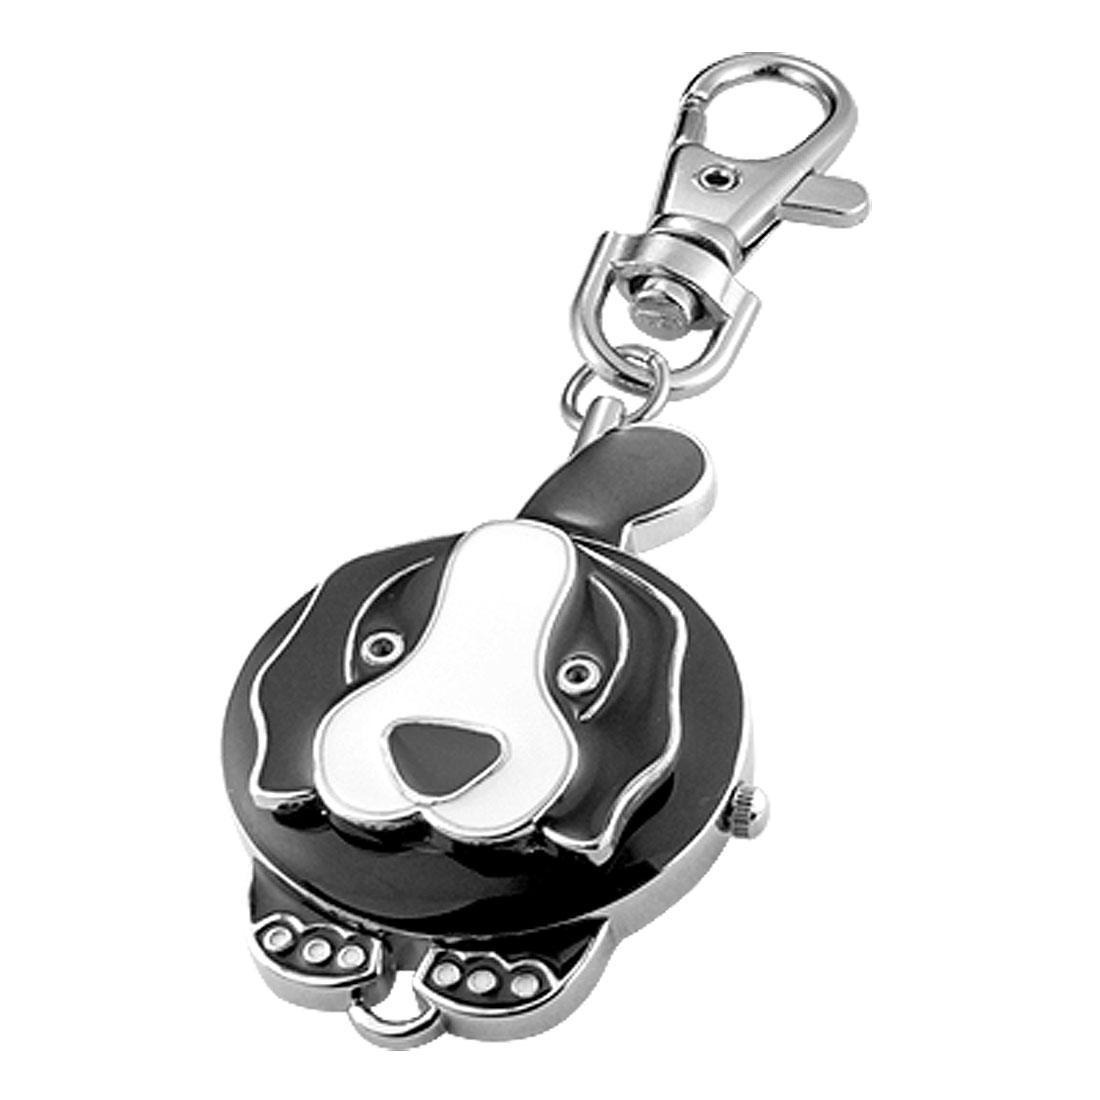 Dog & Round Watchcase Pendant Keychain Keyring Watch